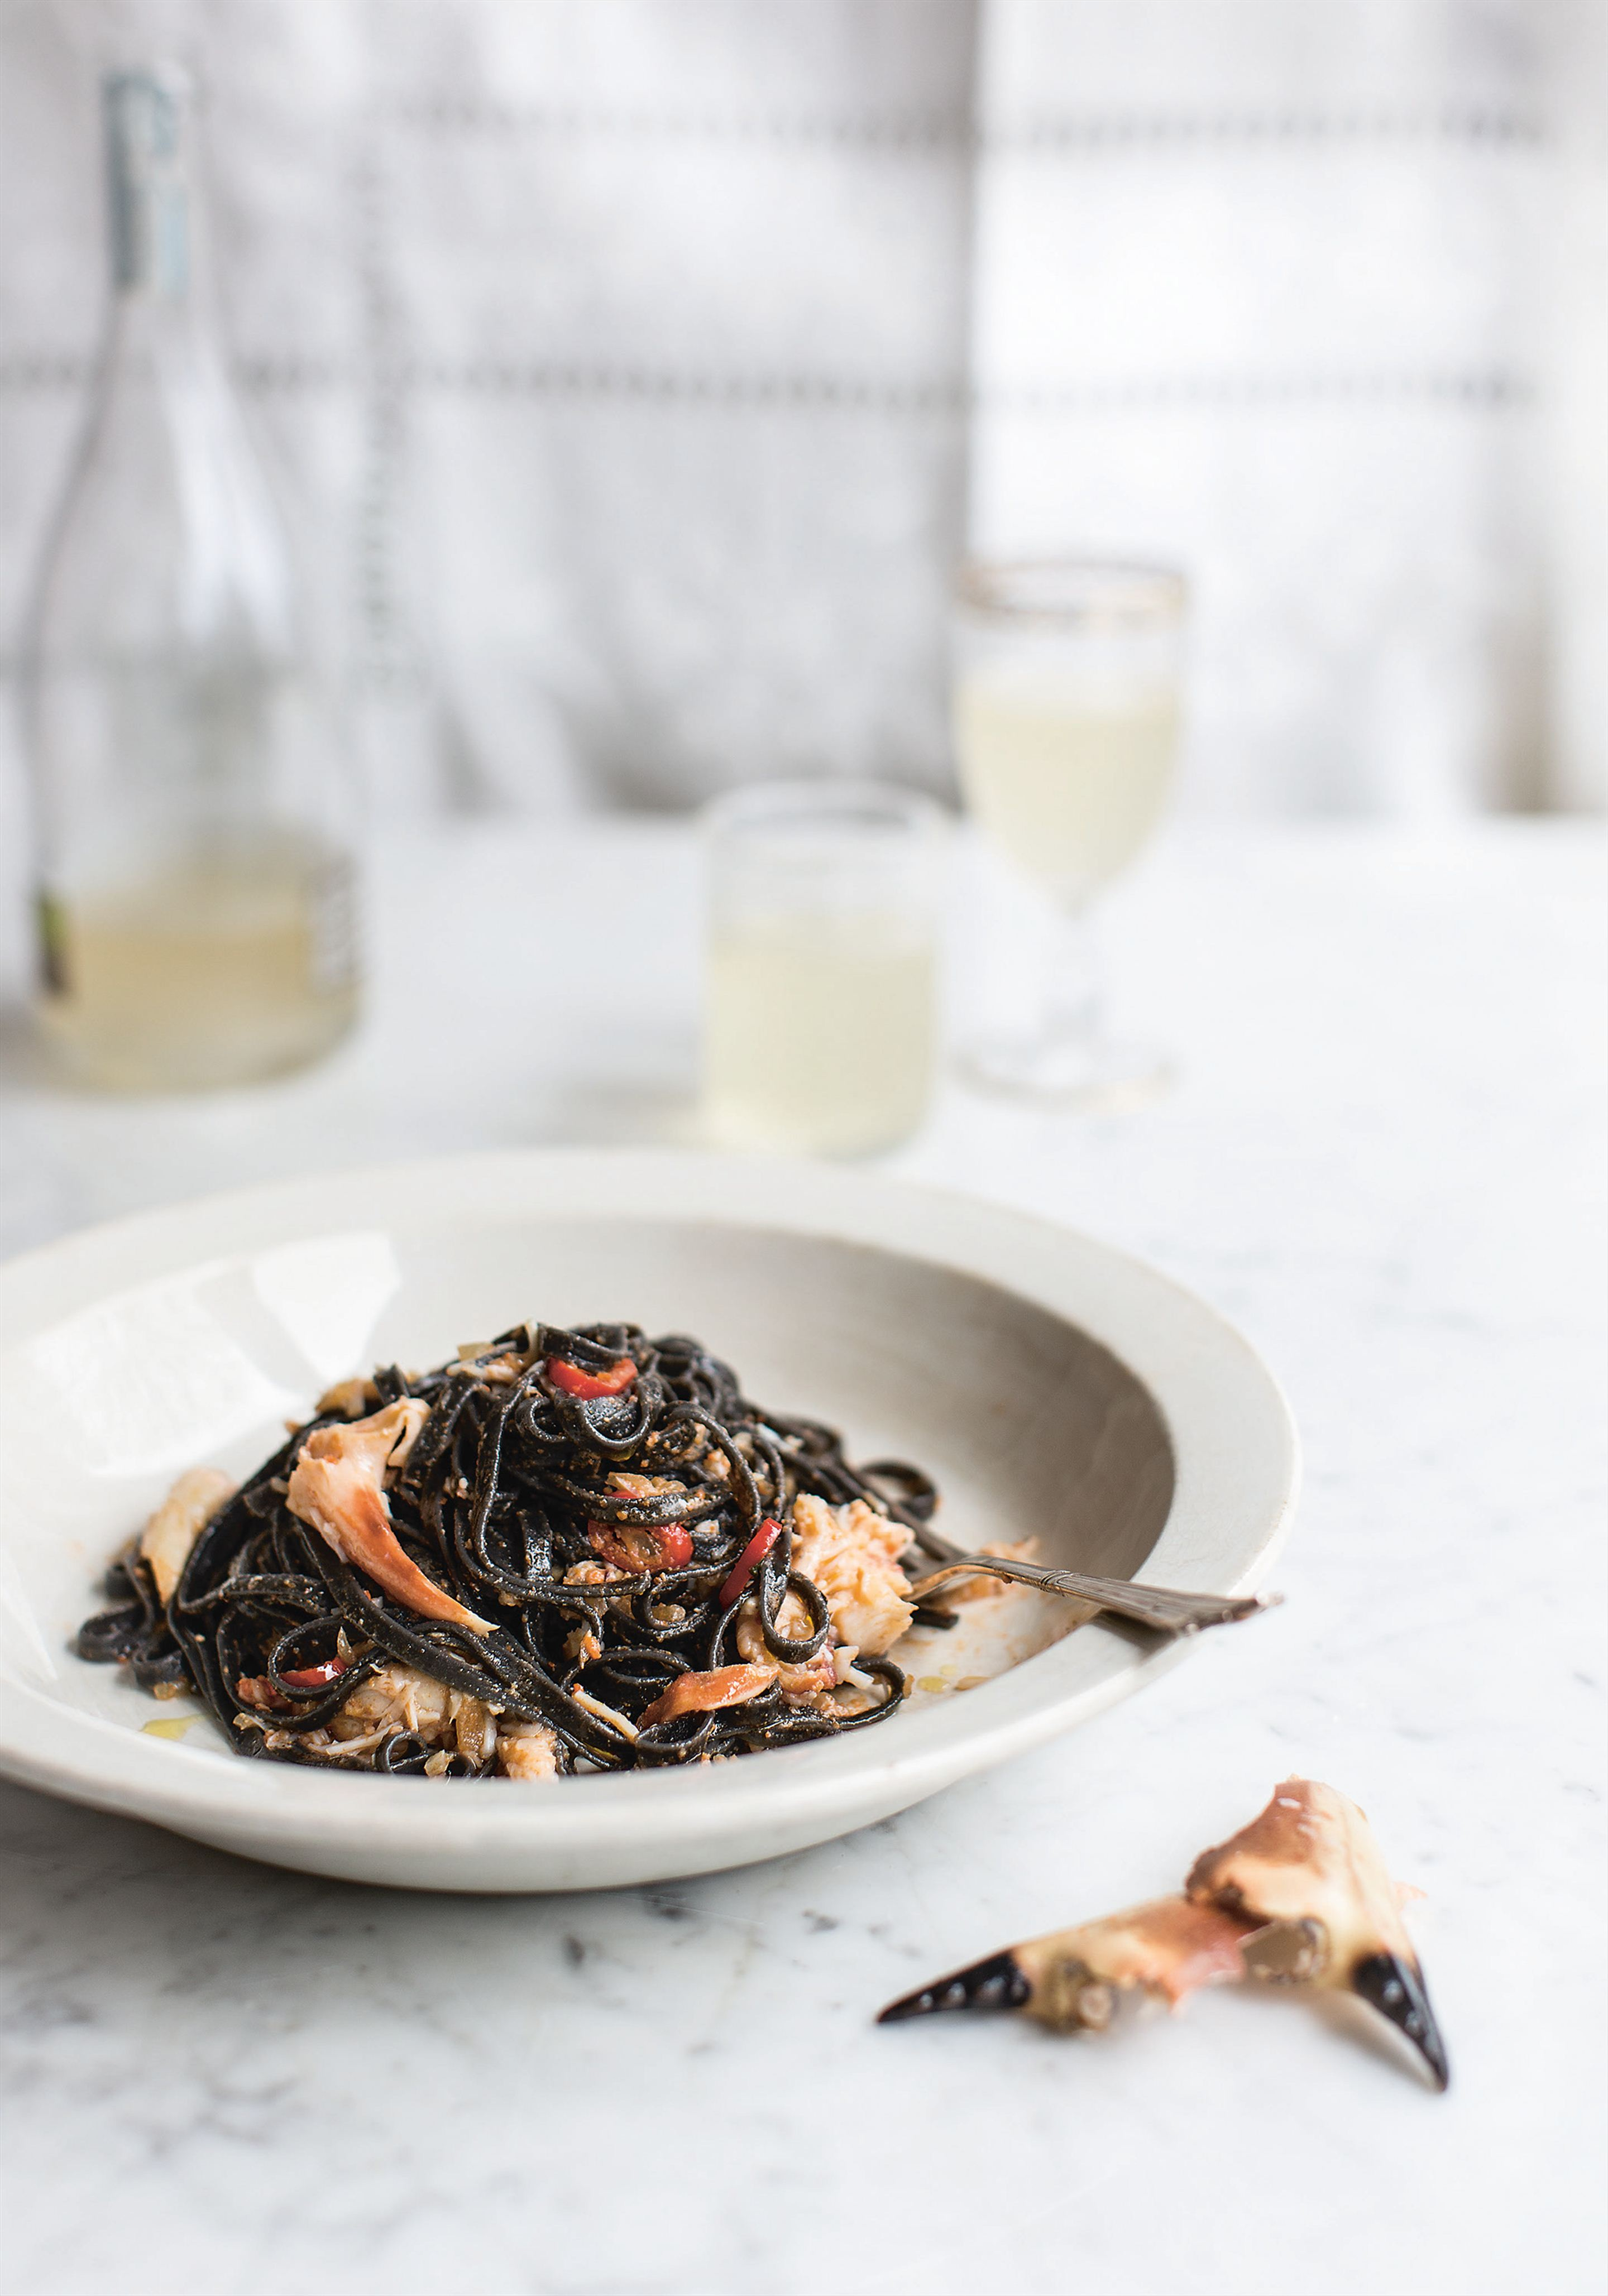 Black linguine with crab